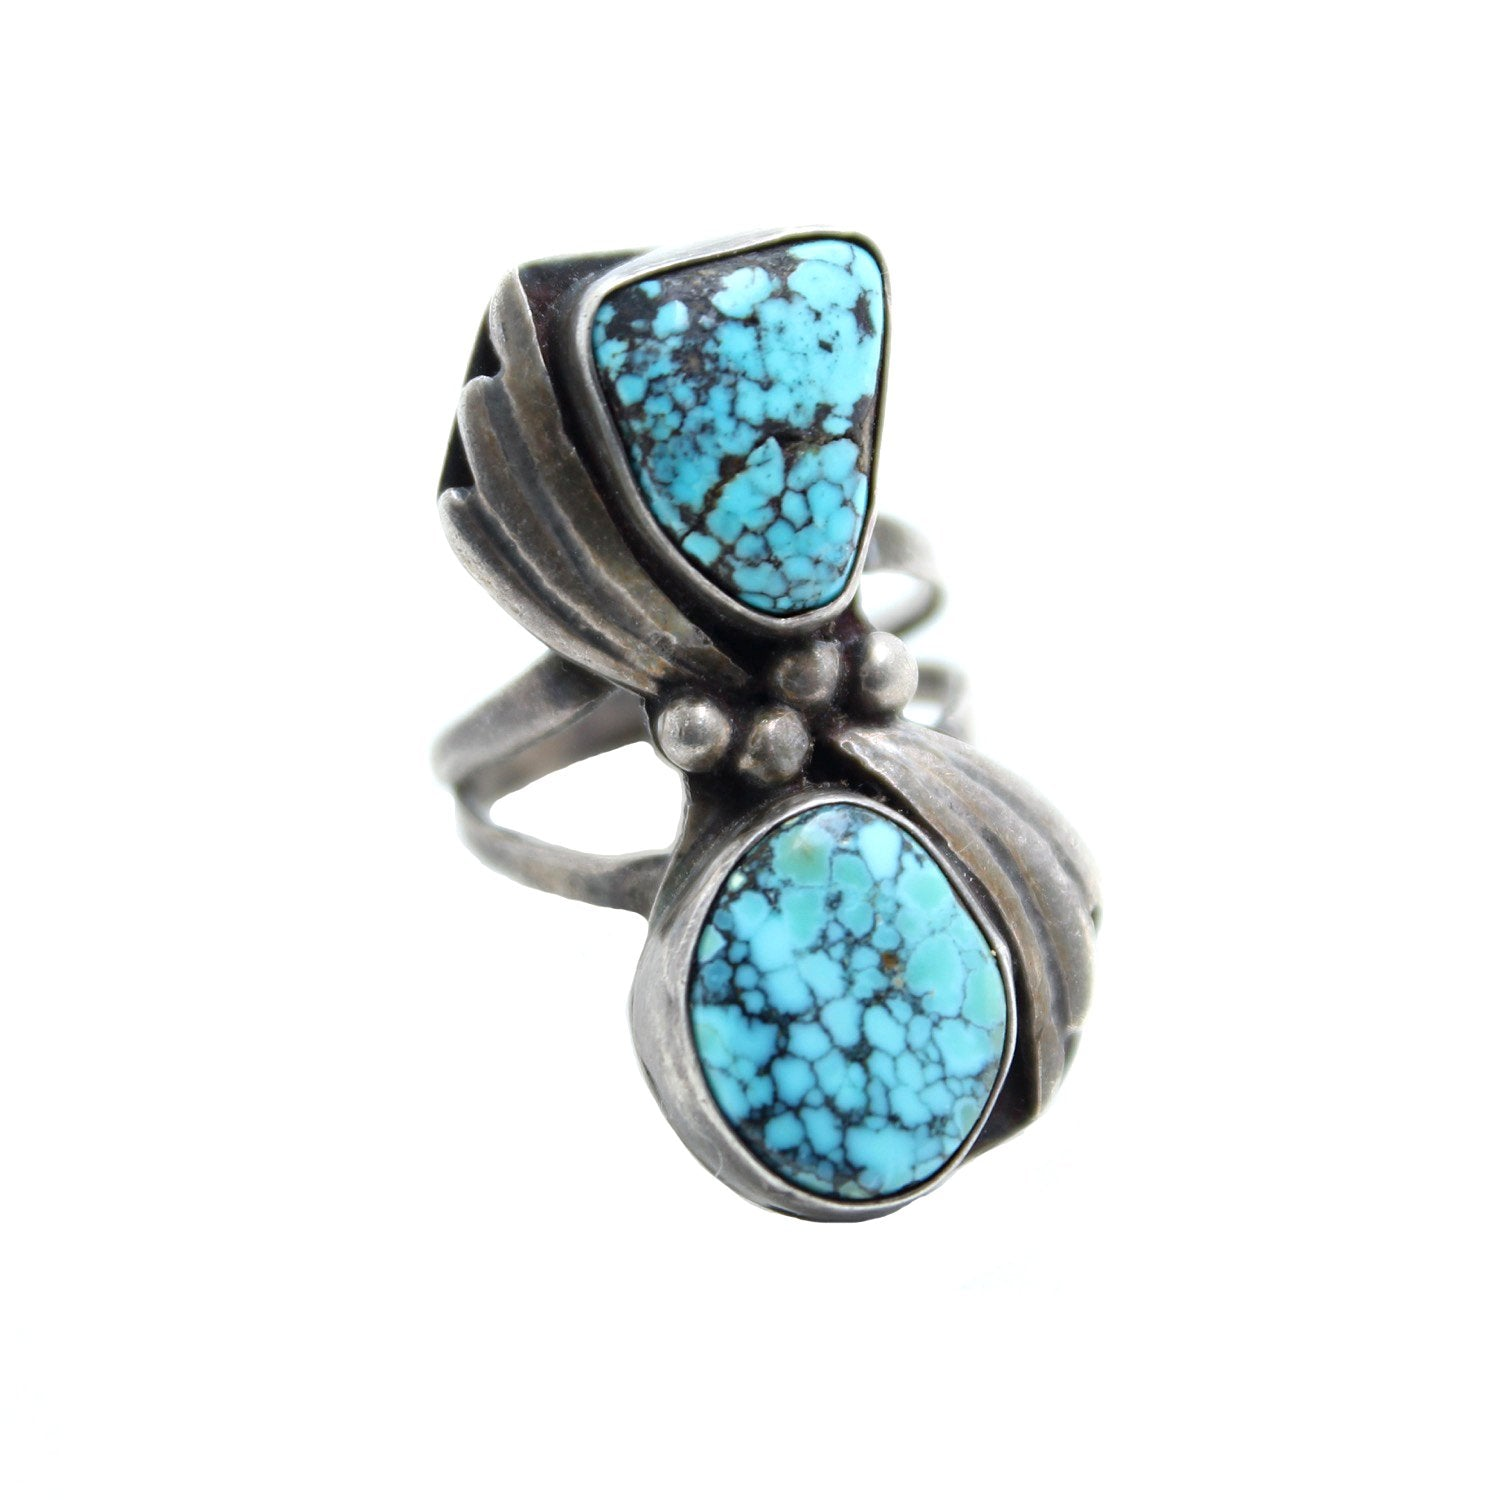 il rings ring natural zoom silver turquoise copper sterling stone blue fullxfull listing